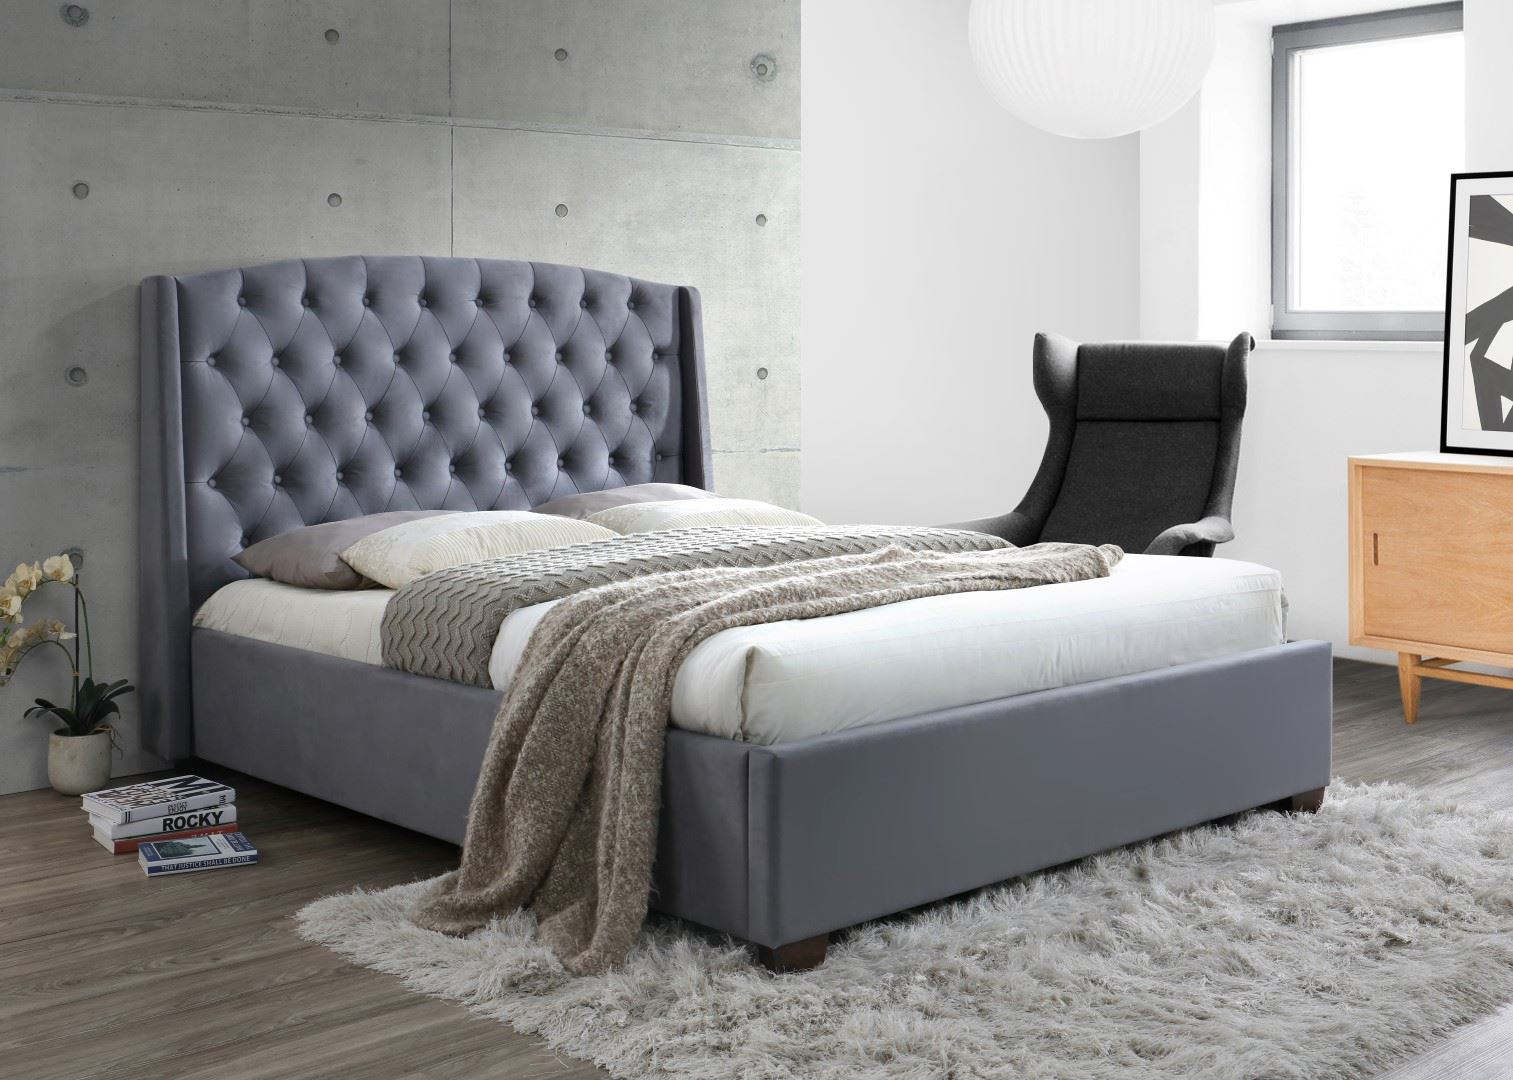 Birlea Balmoral Wing Back Super King Size Bed Frame 6FT 180cm Grey Velvet Fabric